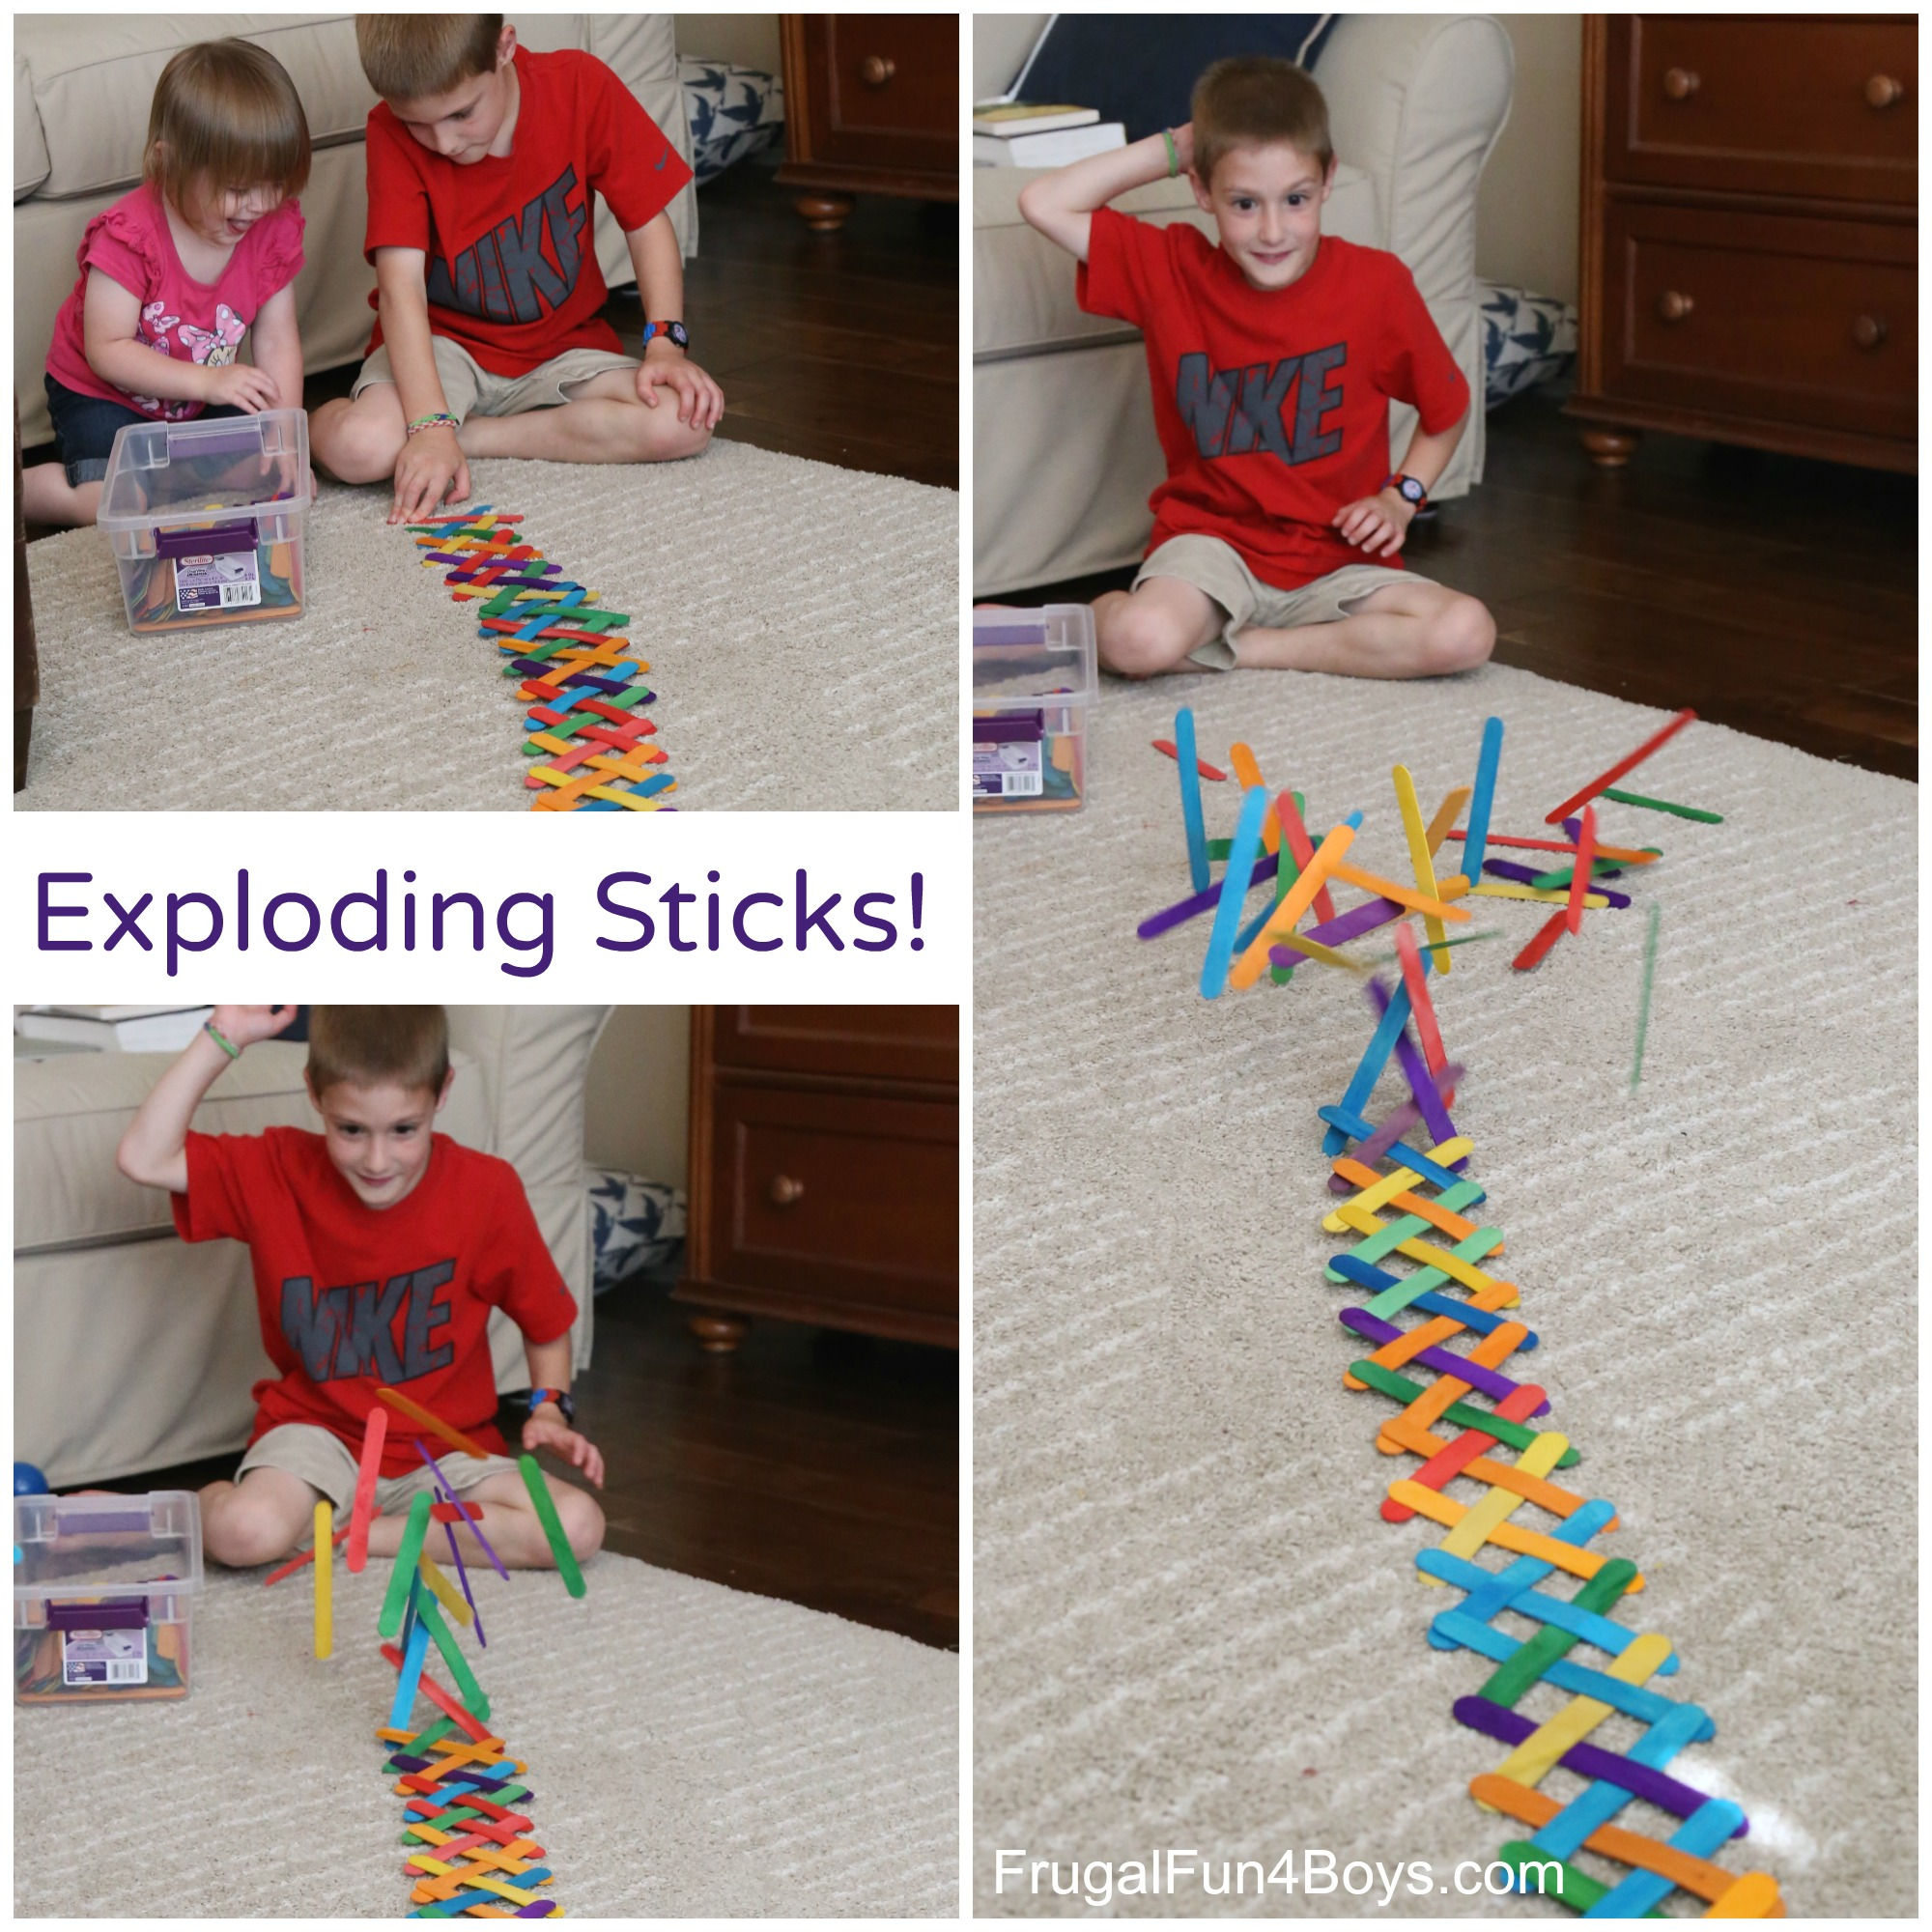 Build an Exploding Chain Reaction with Craft Sticks